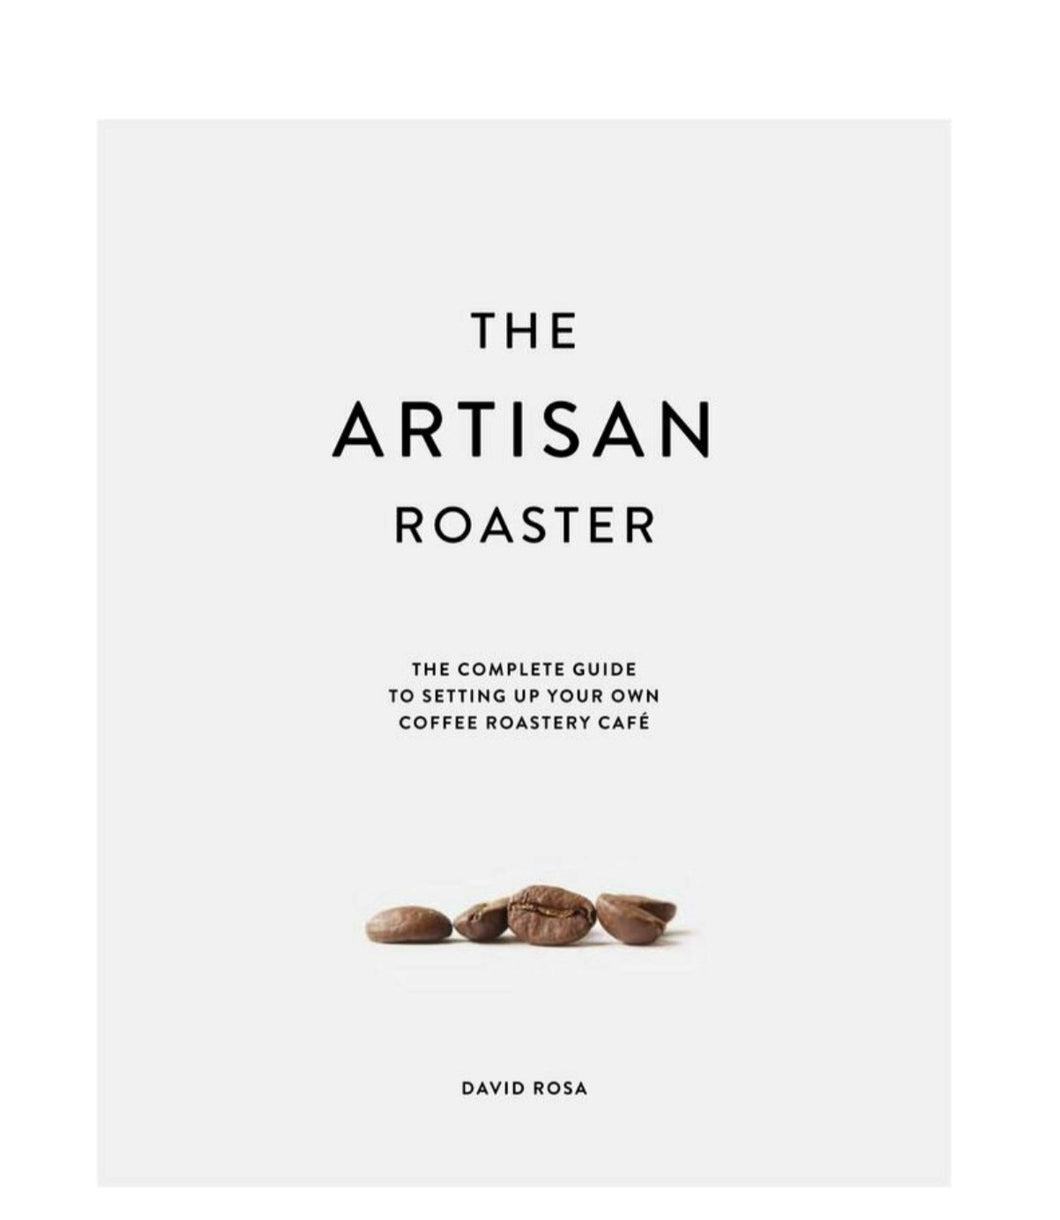 THE ARTISAN ROASTER- By David Rosa